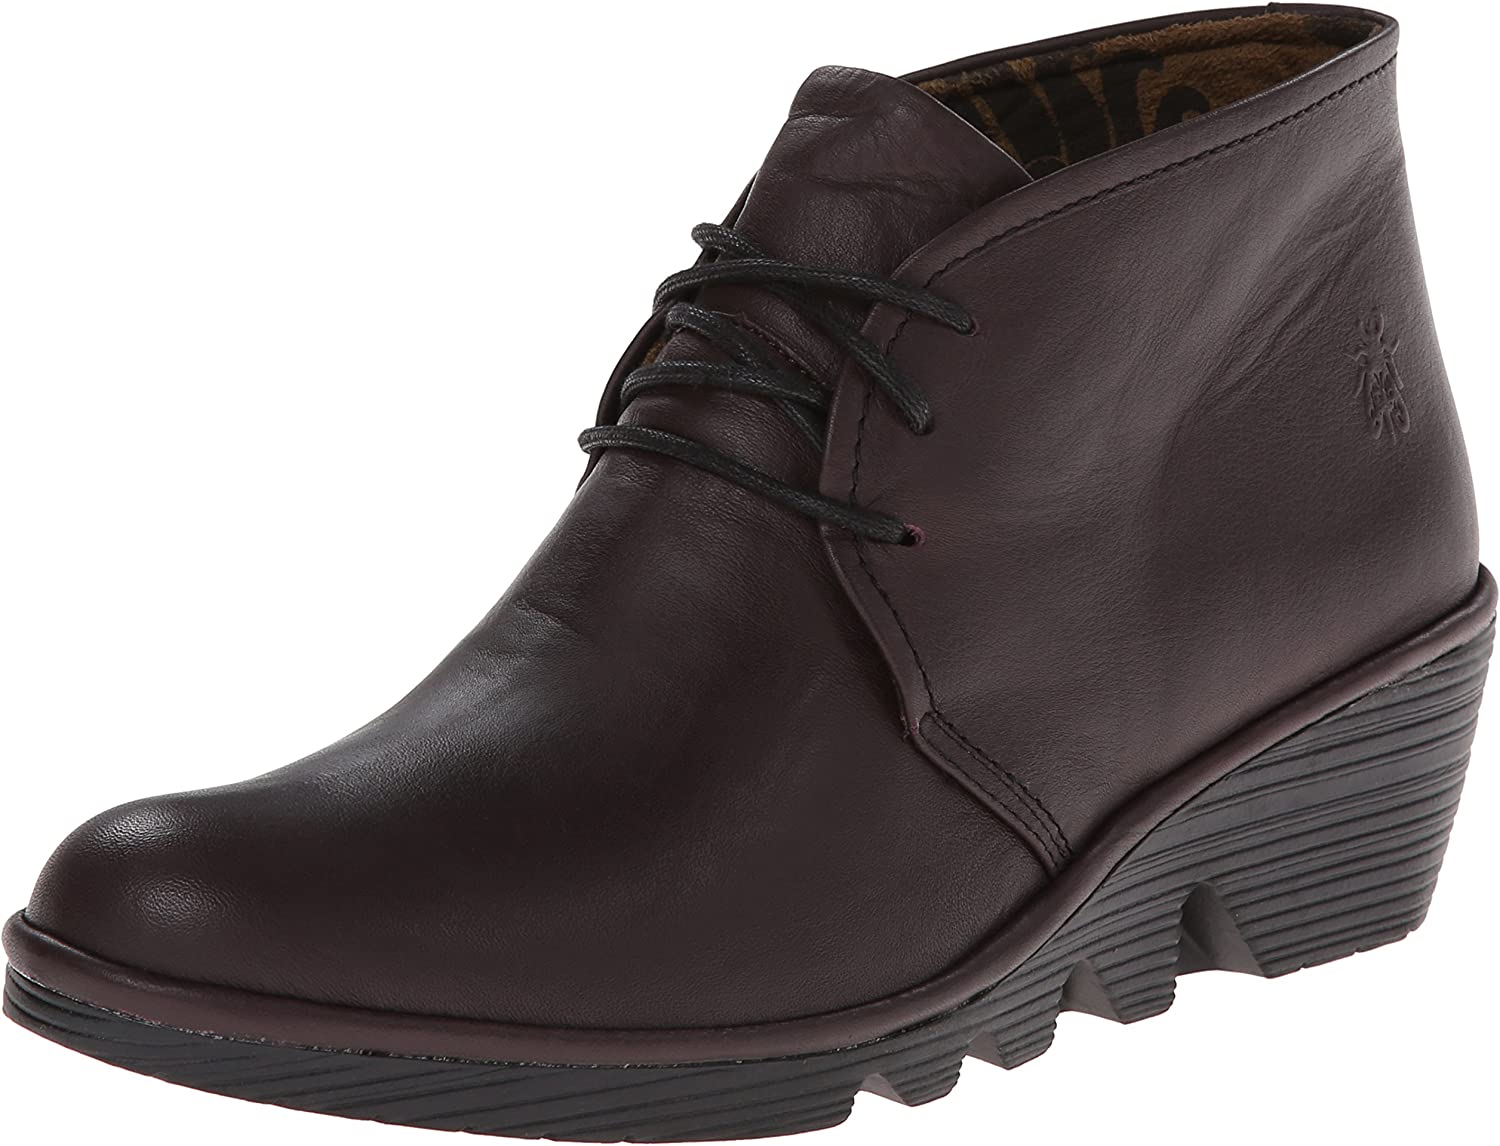 Fly London Women's Pert Ankle Boot